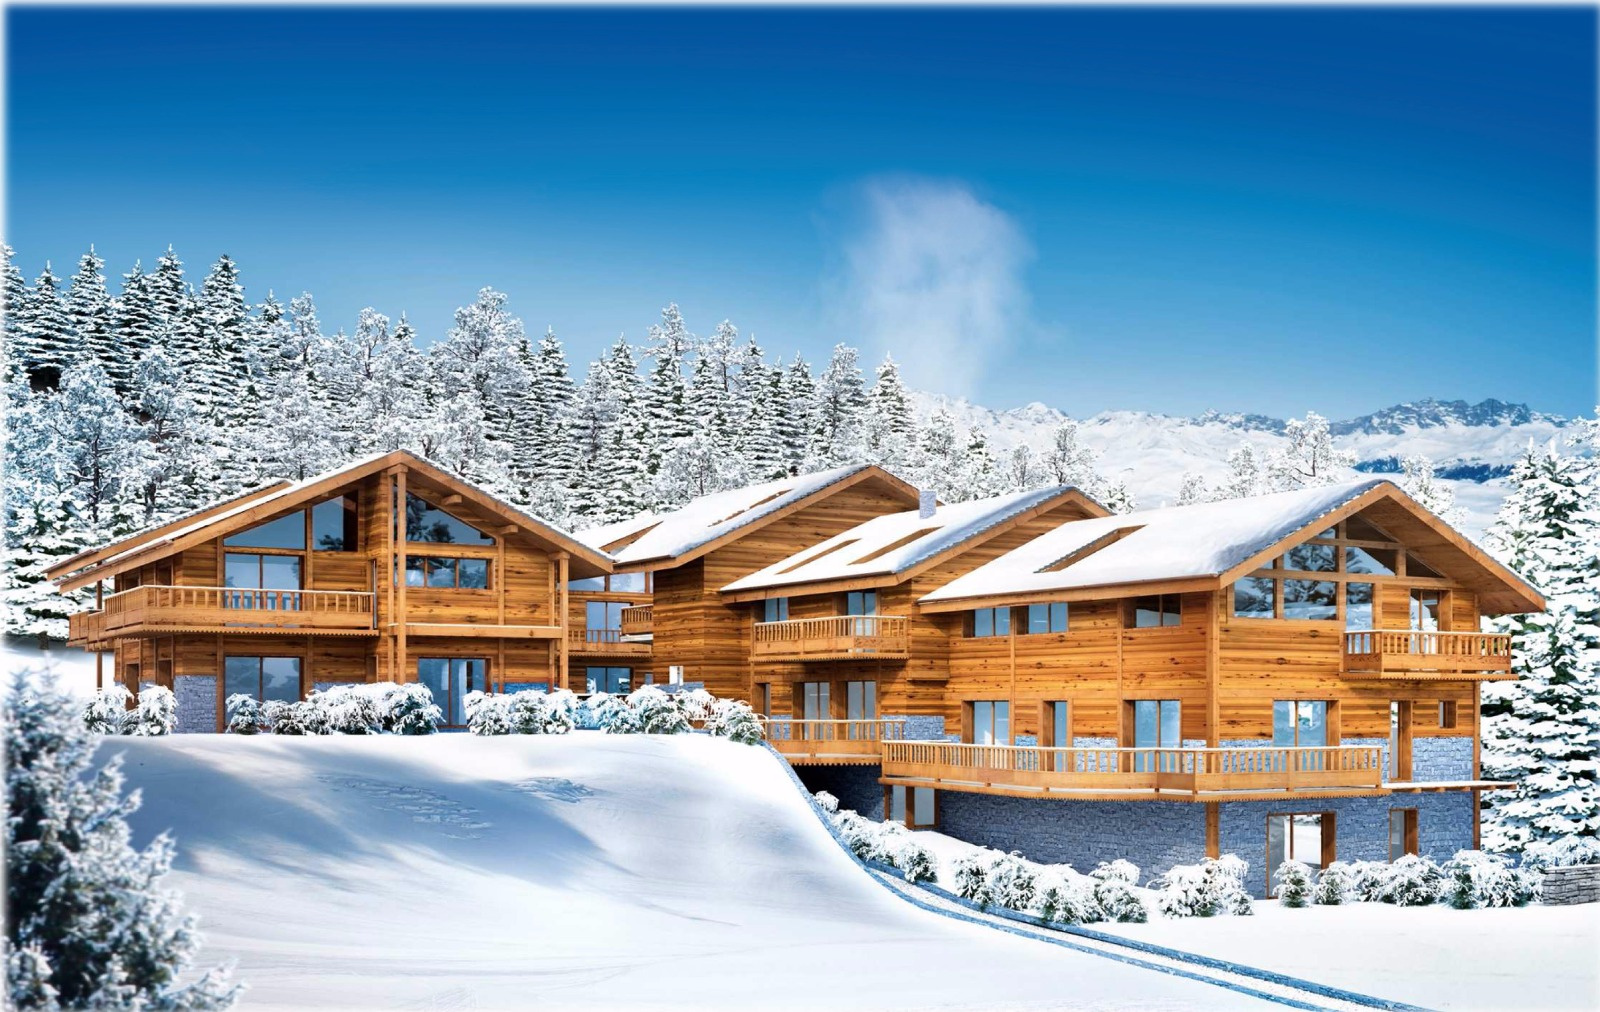 Offres de vente Appartements Meribel les allues 73550